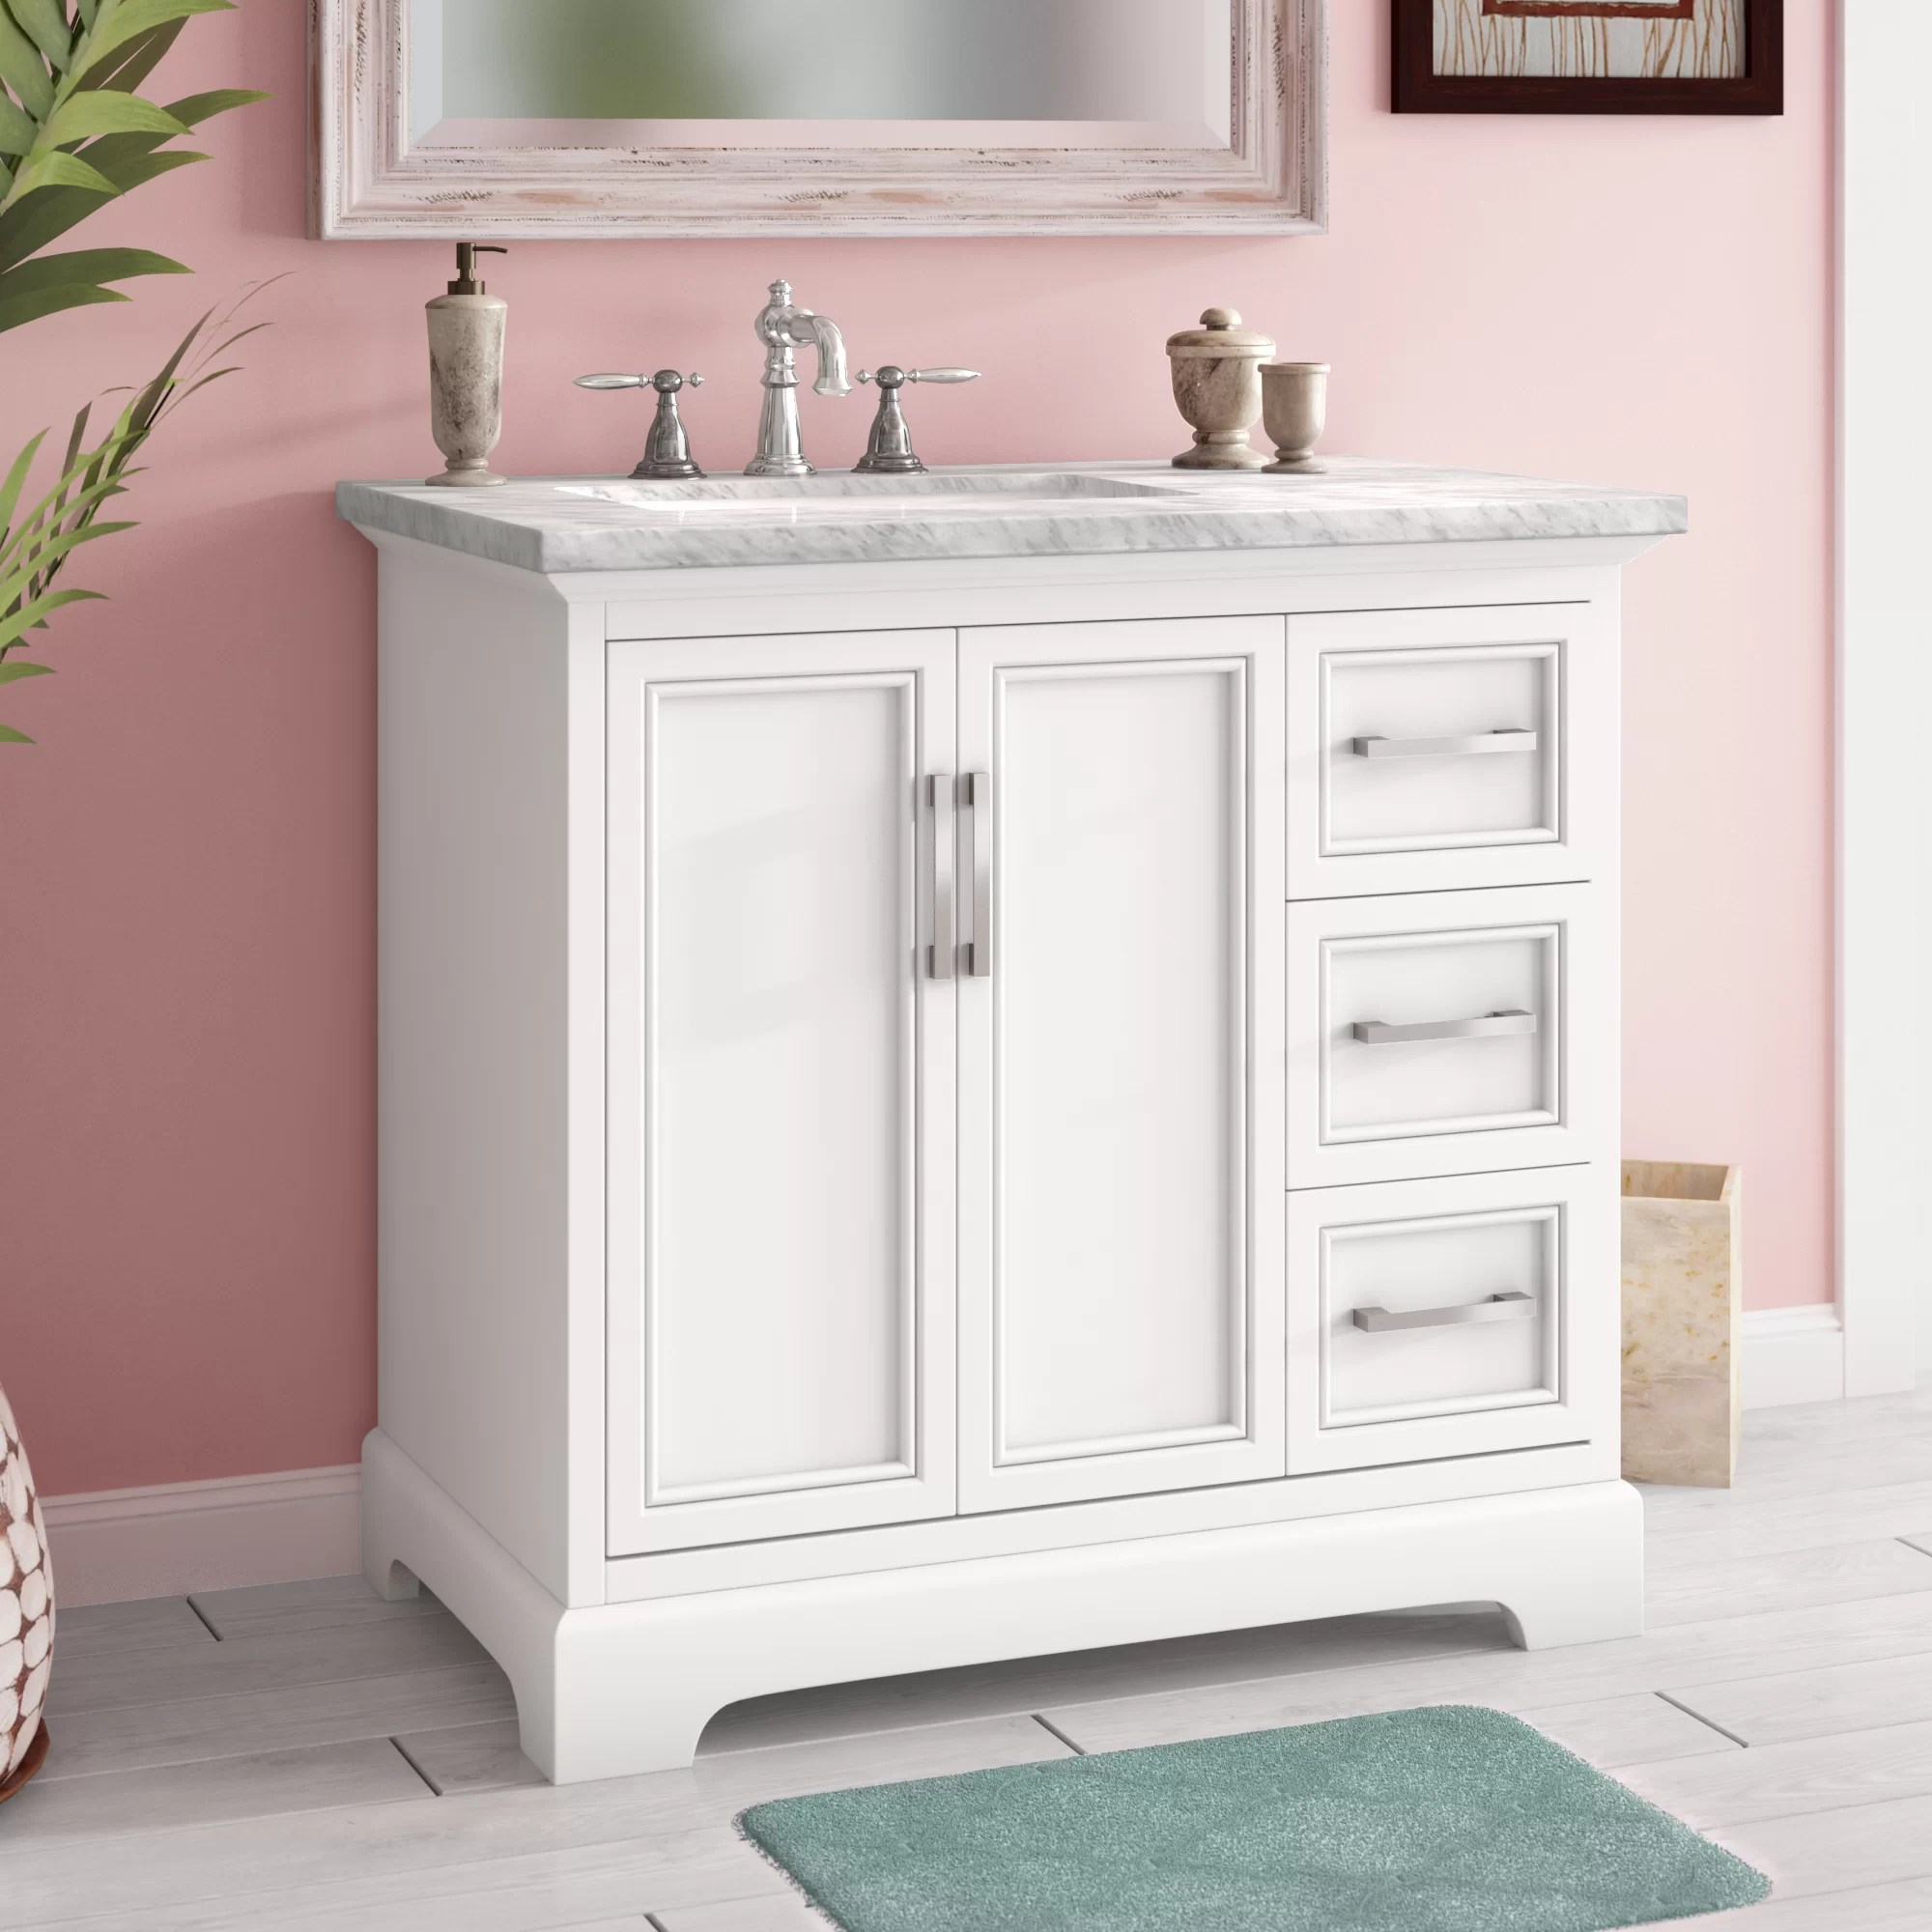 Meuble Coiffeuse Grand Modele Ensemble De Meuble Lavabo De Salle De Bain Simple 36 Po Ravenworth